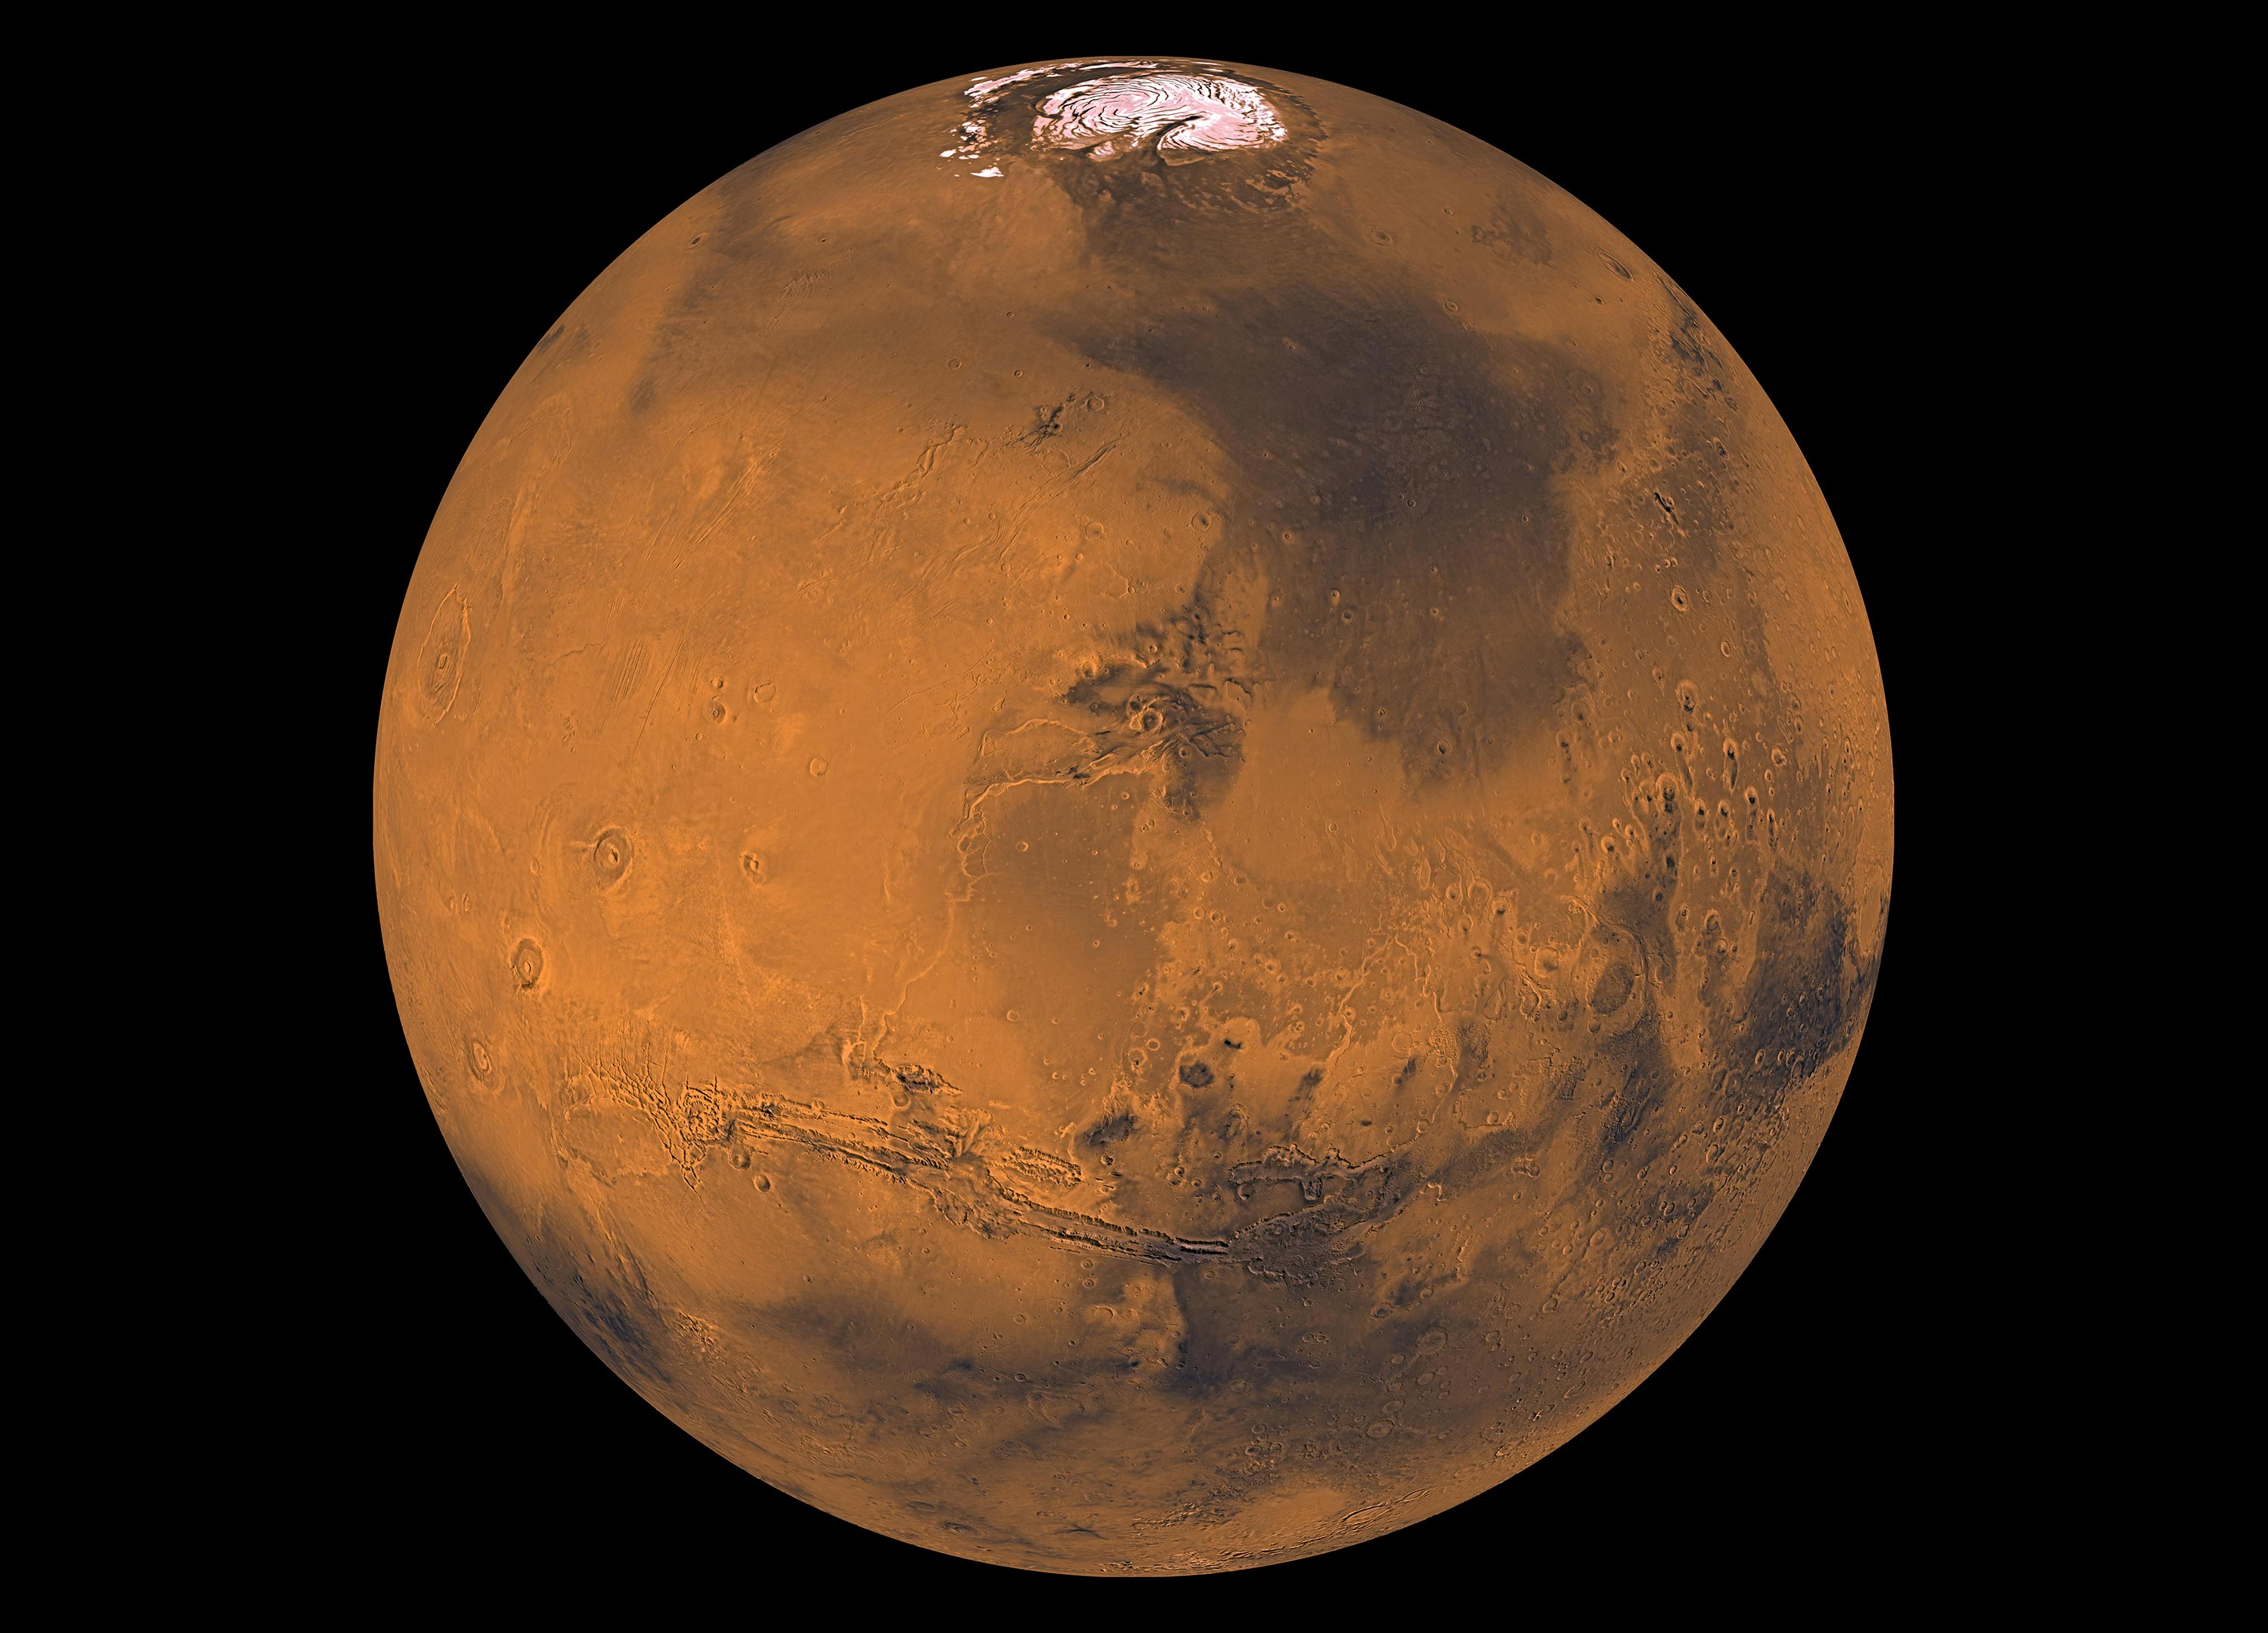 Up to 99% of Martian Water Can Still Be Trapped in the Earth's Crust – Not Lost to Space So Long Theorized